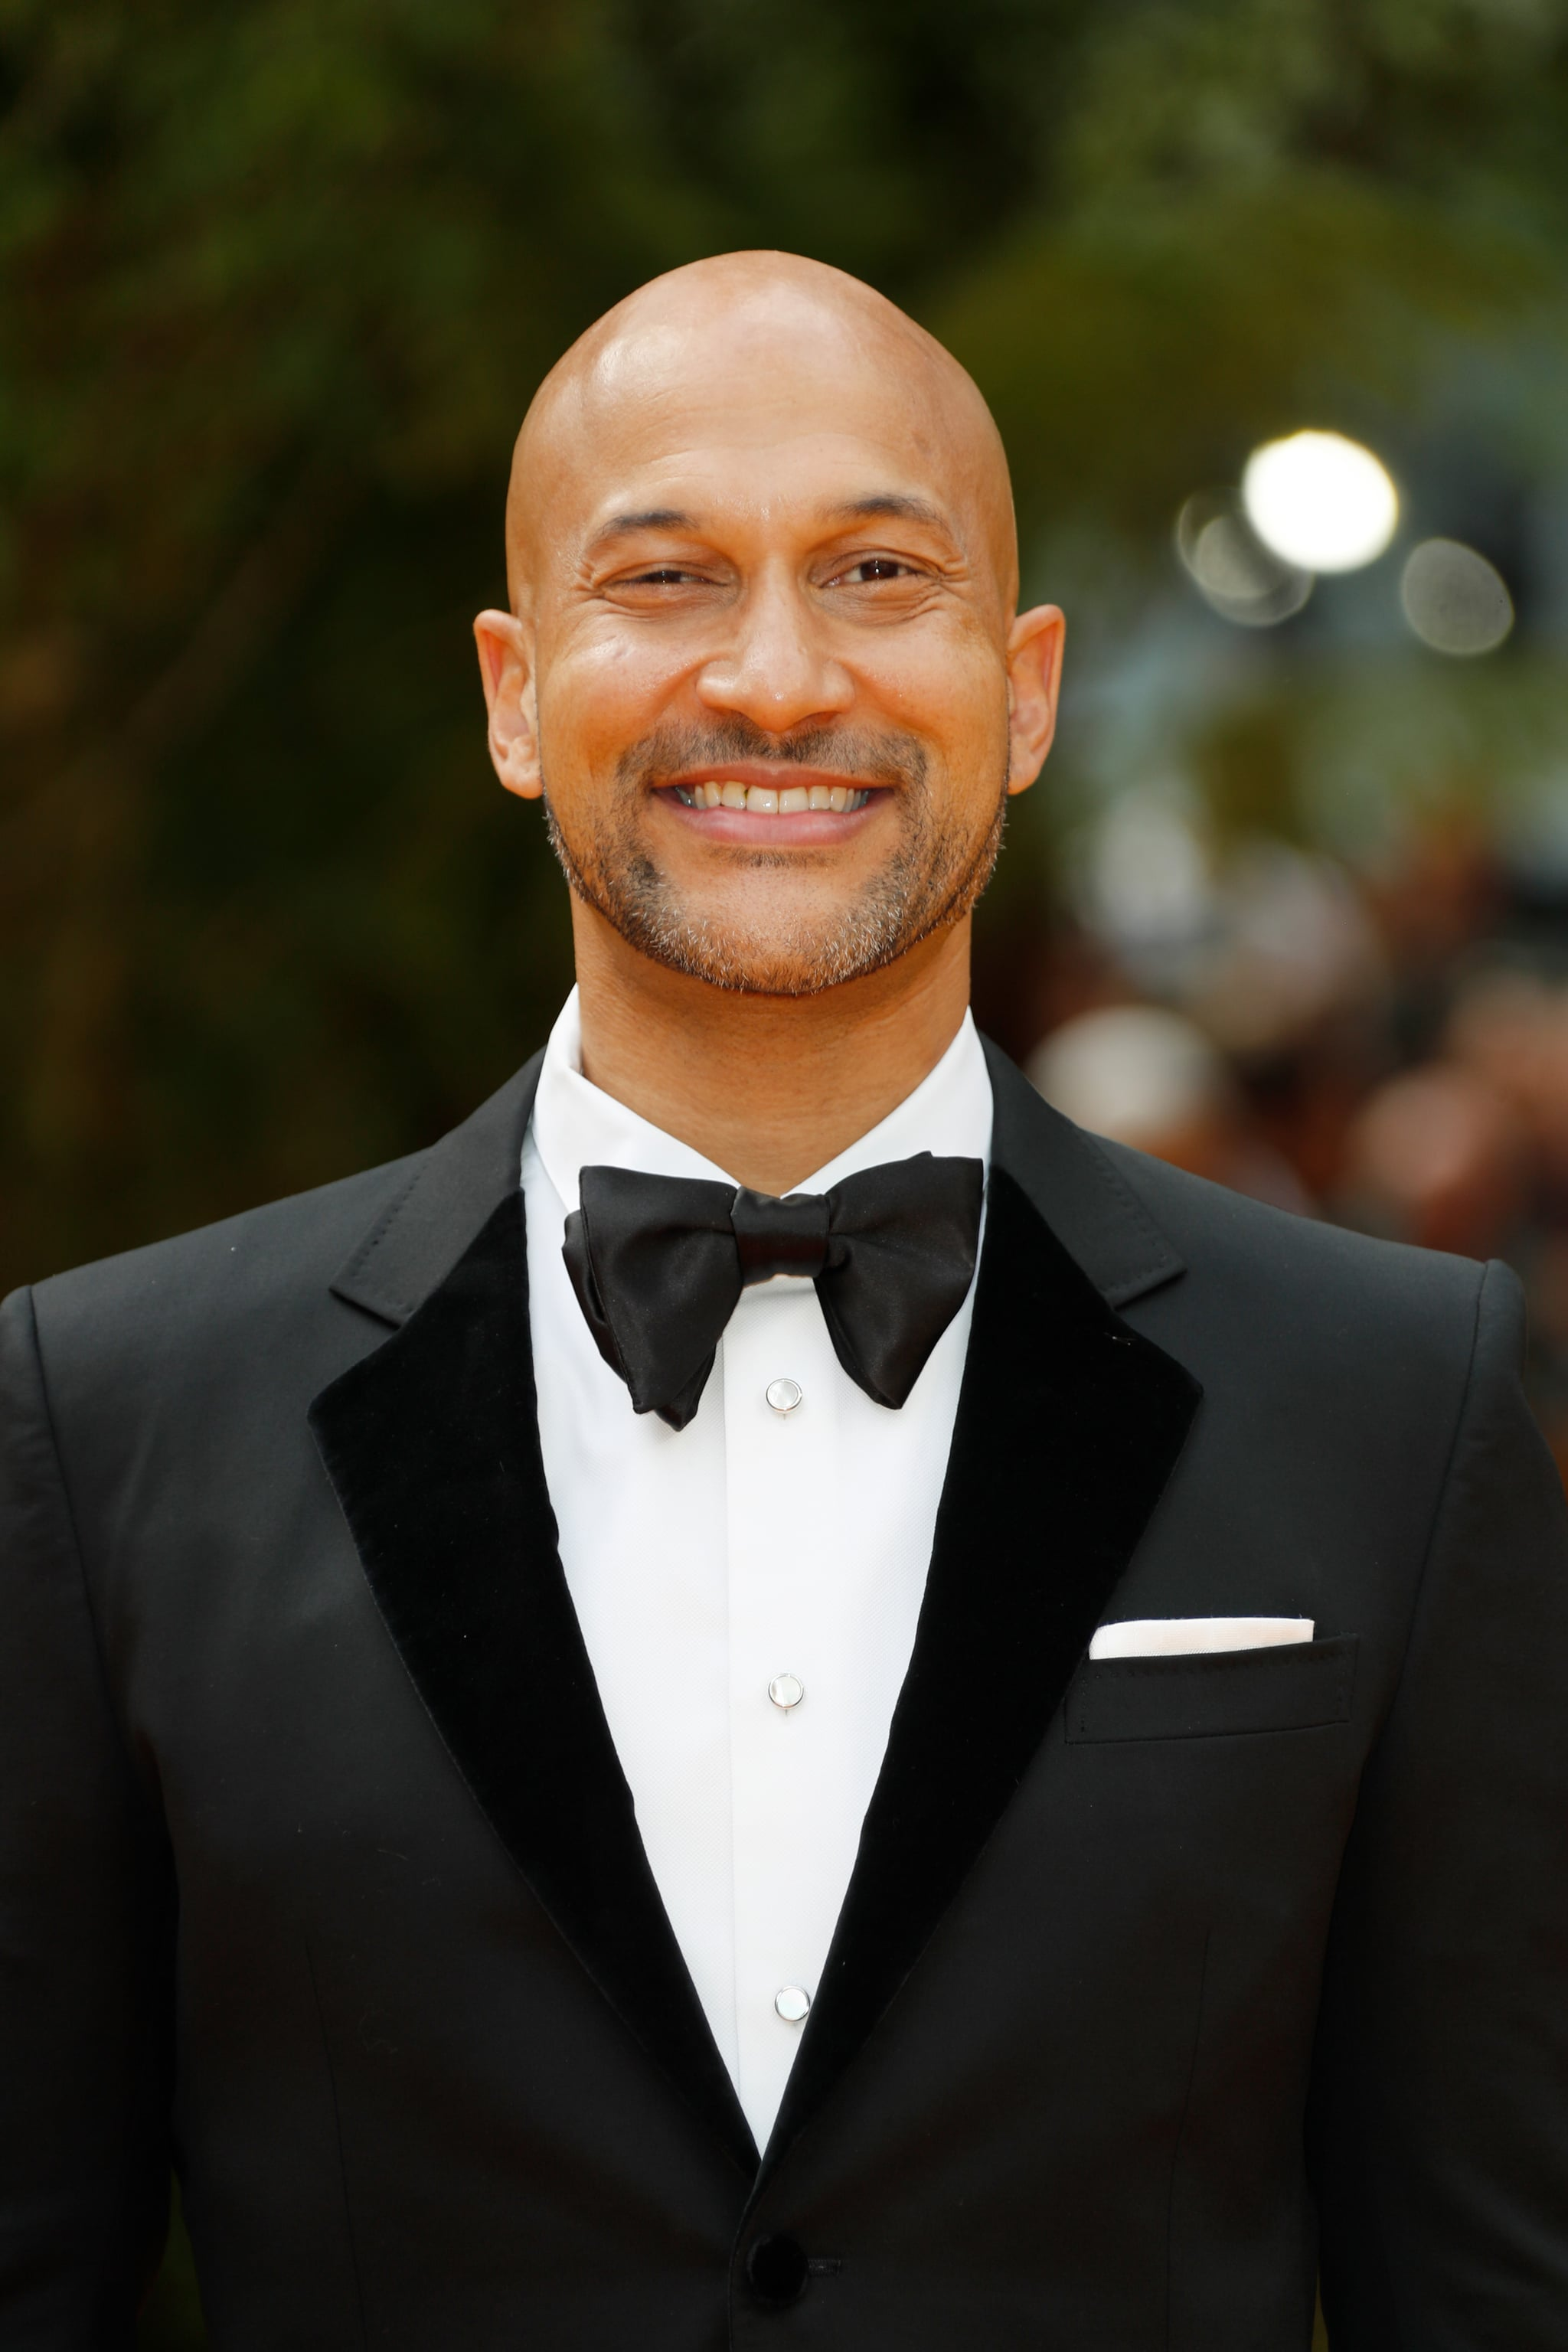 Pictured Keegan Michael Key At The Lion King Premiere In